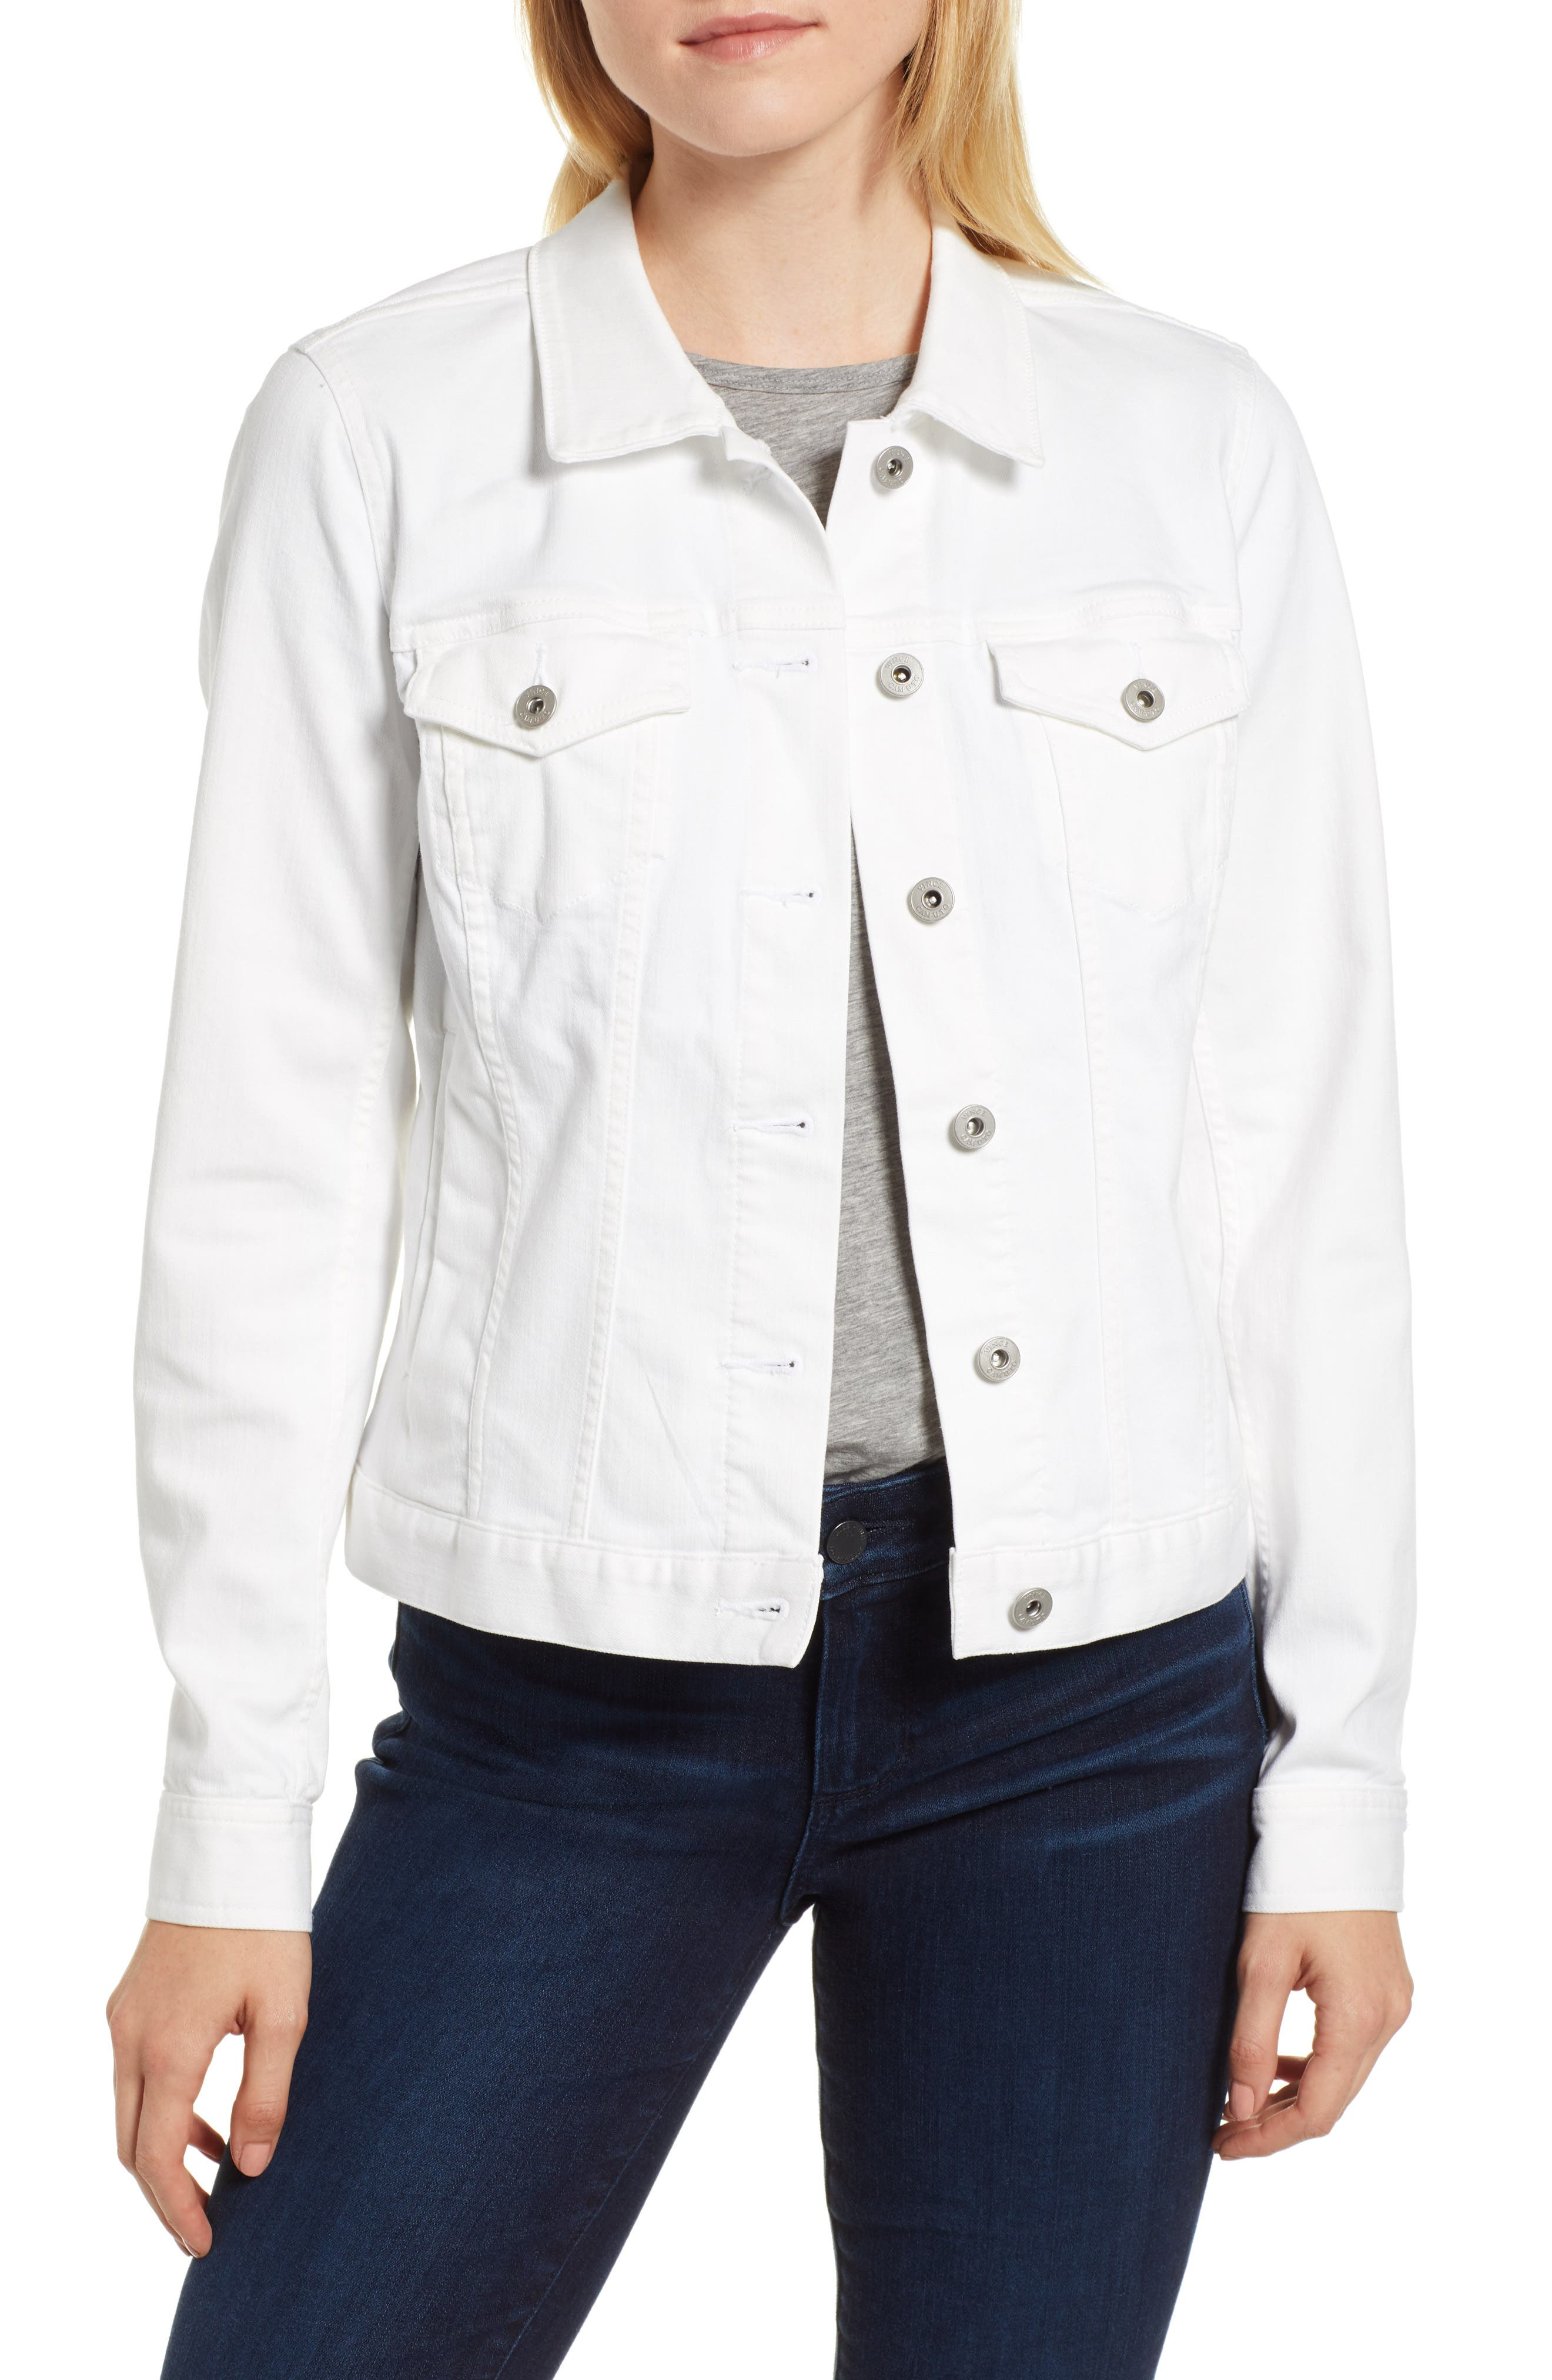 VINCE CAMUTO, Two by Vince Camuto Denim Jacket, Main thumbnail 1, color, ULTRA WHITE